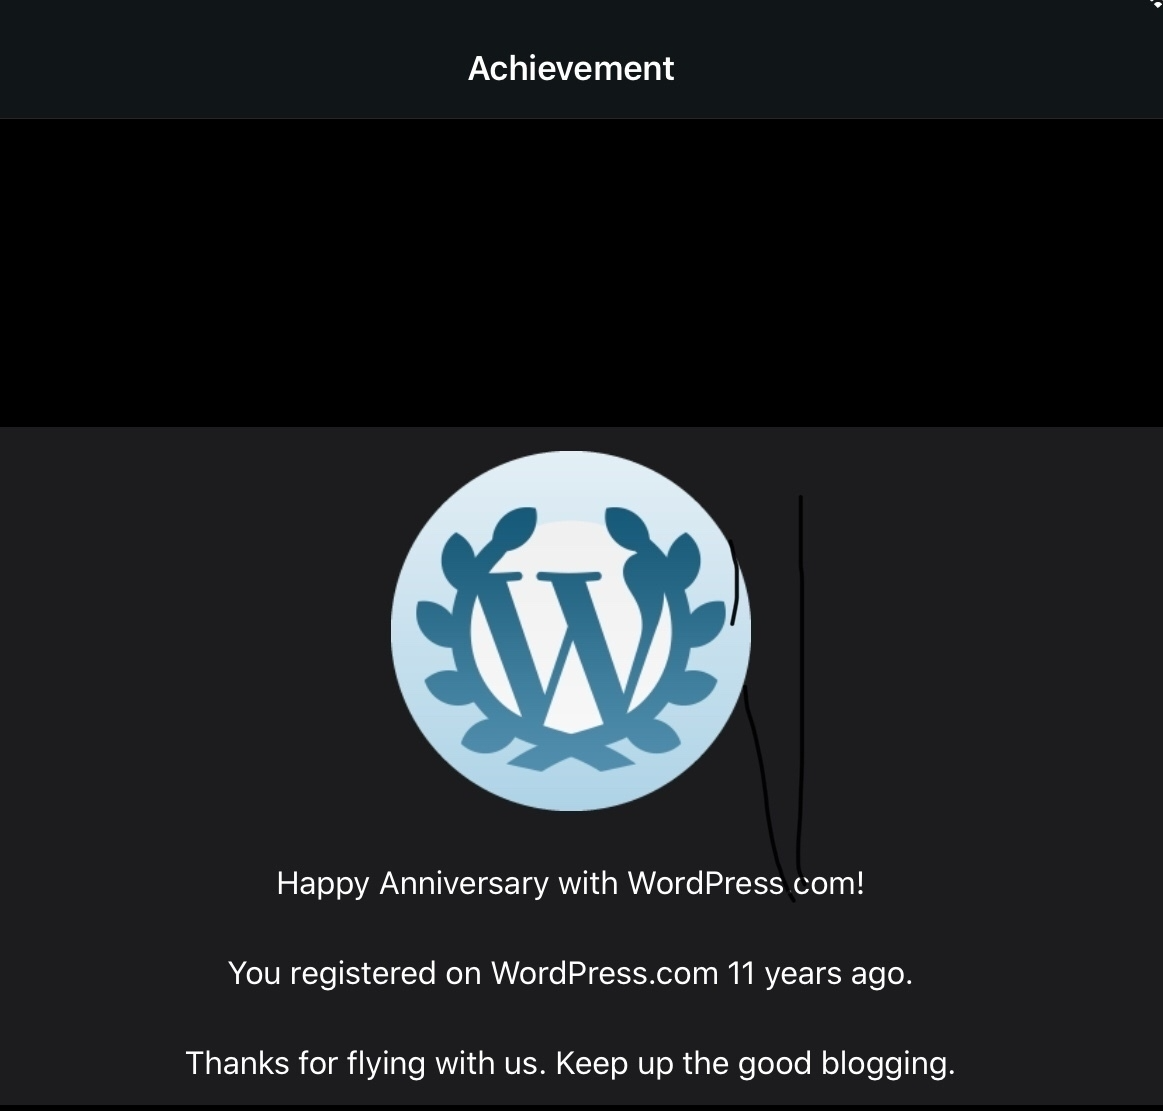 You registered on WordPress.com 11 years ago